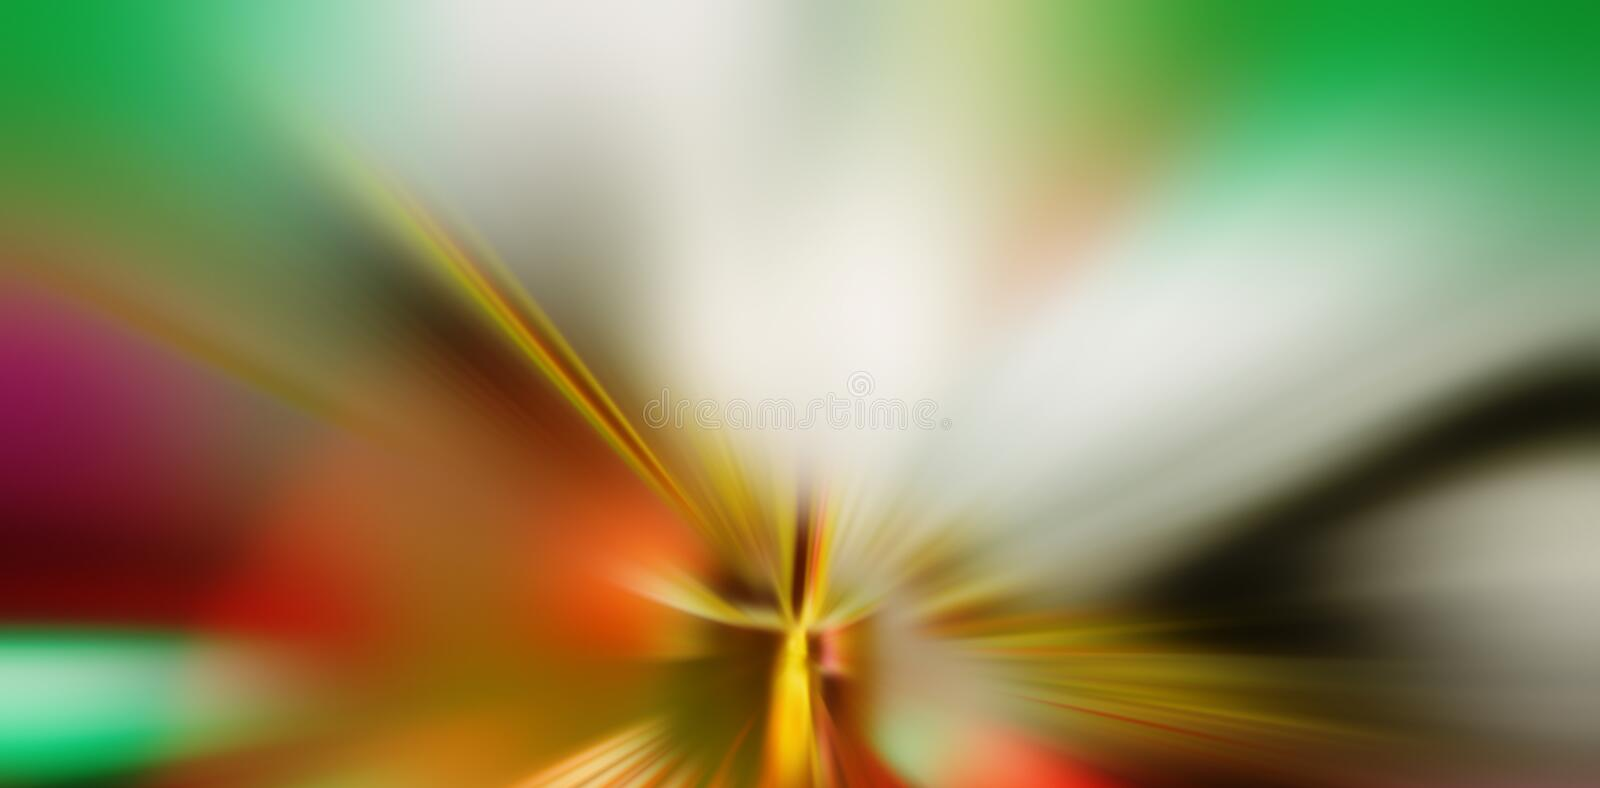 Abstract composition of radial colored rays. Blurred background. Element of design. WEB BANNER royalty free stock image